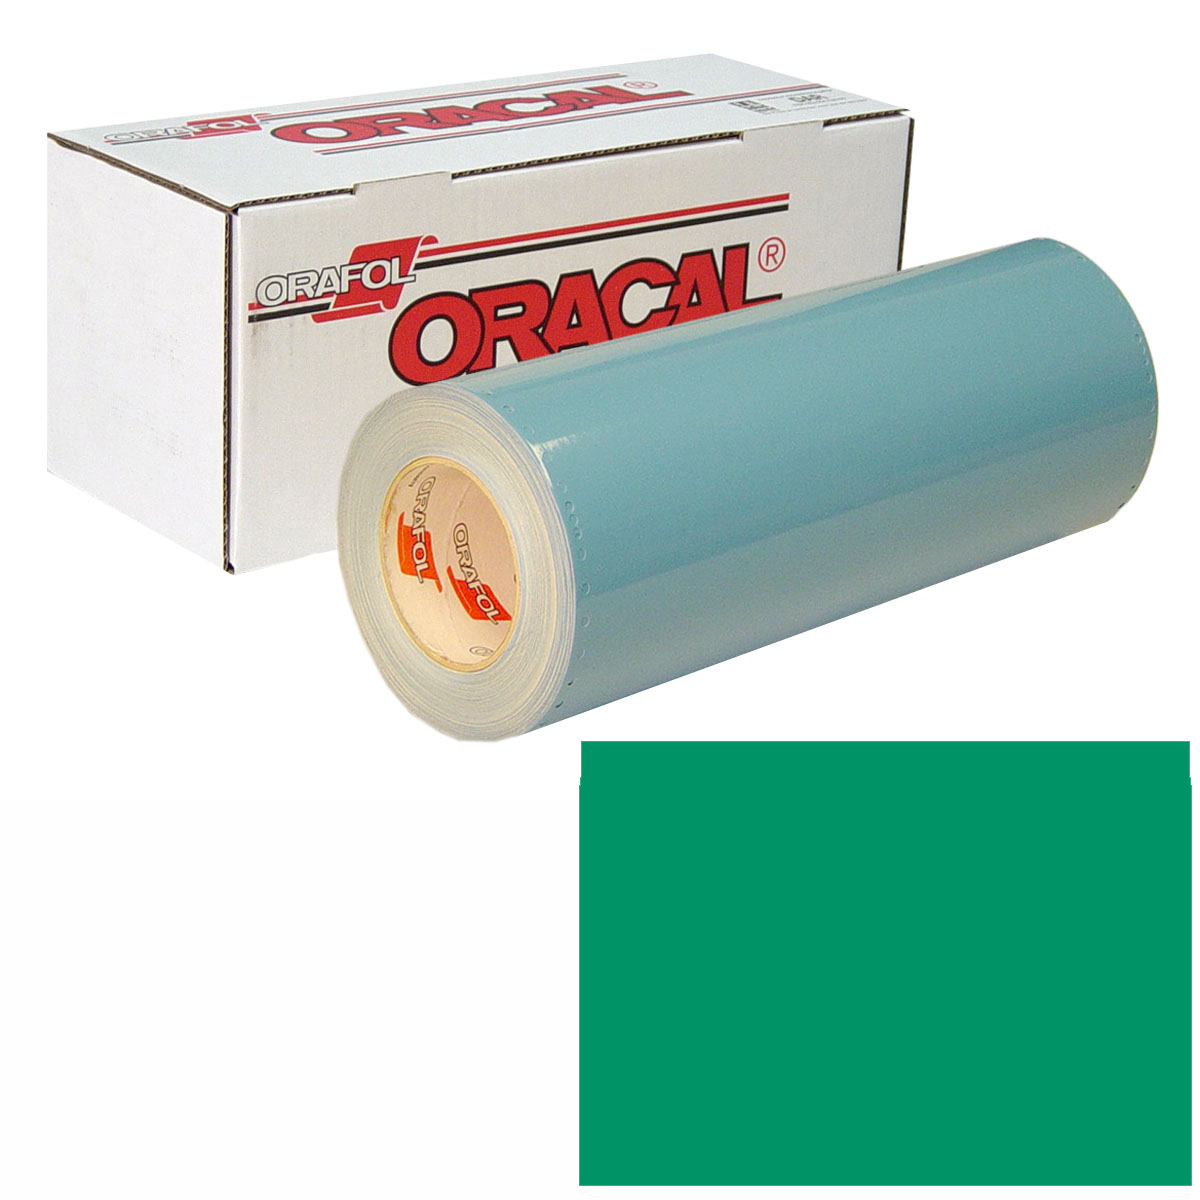 ORACAL 751 Unp 24in X 10yd 061 Green